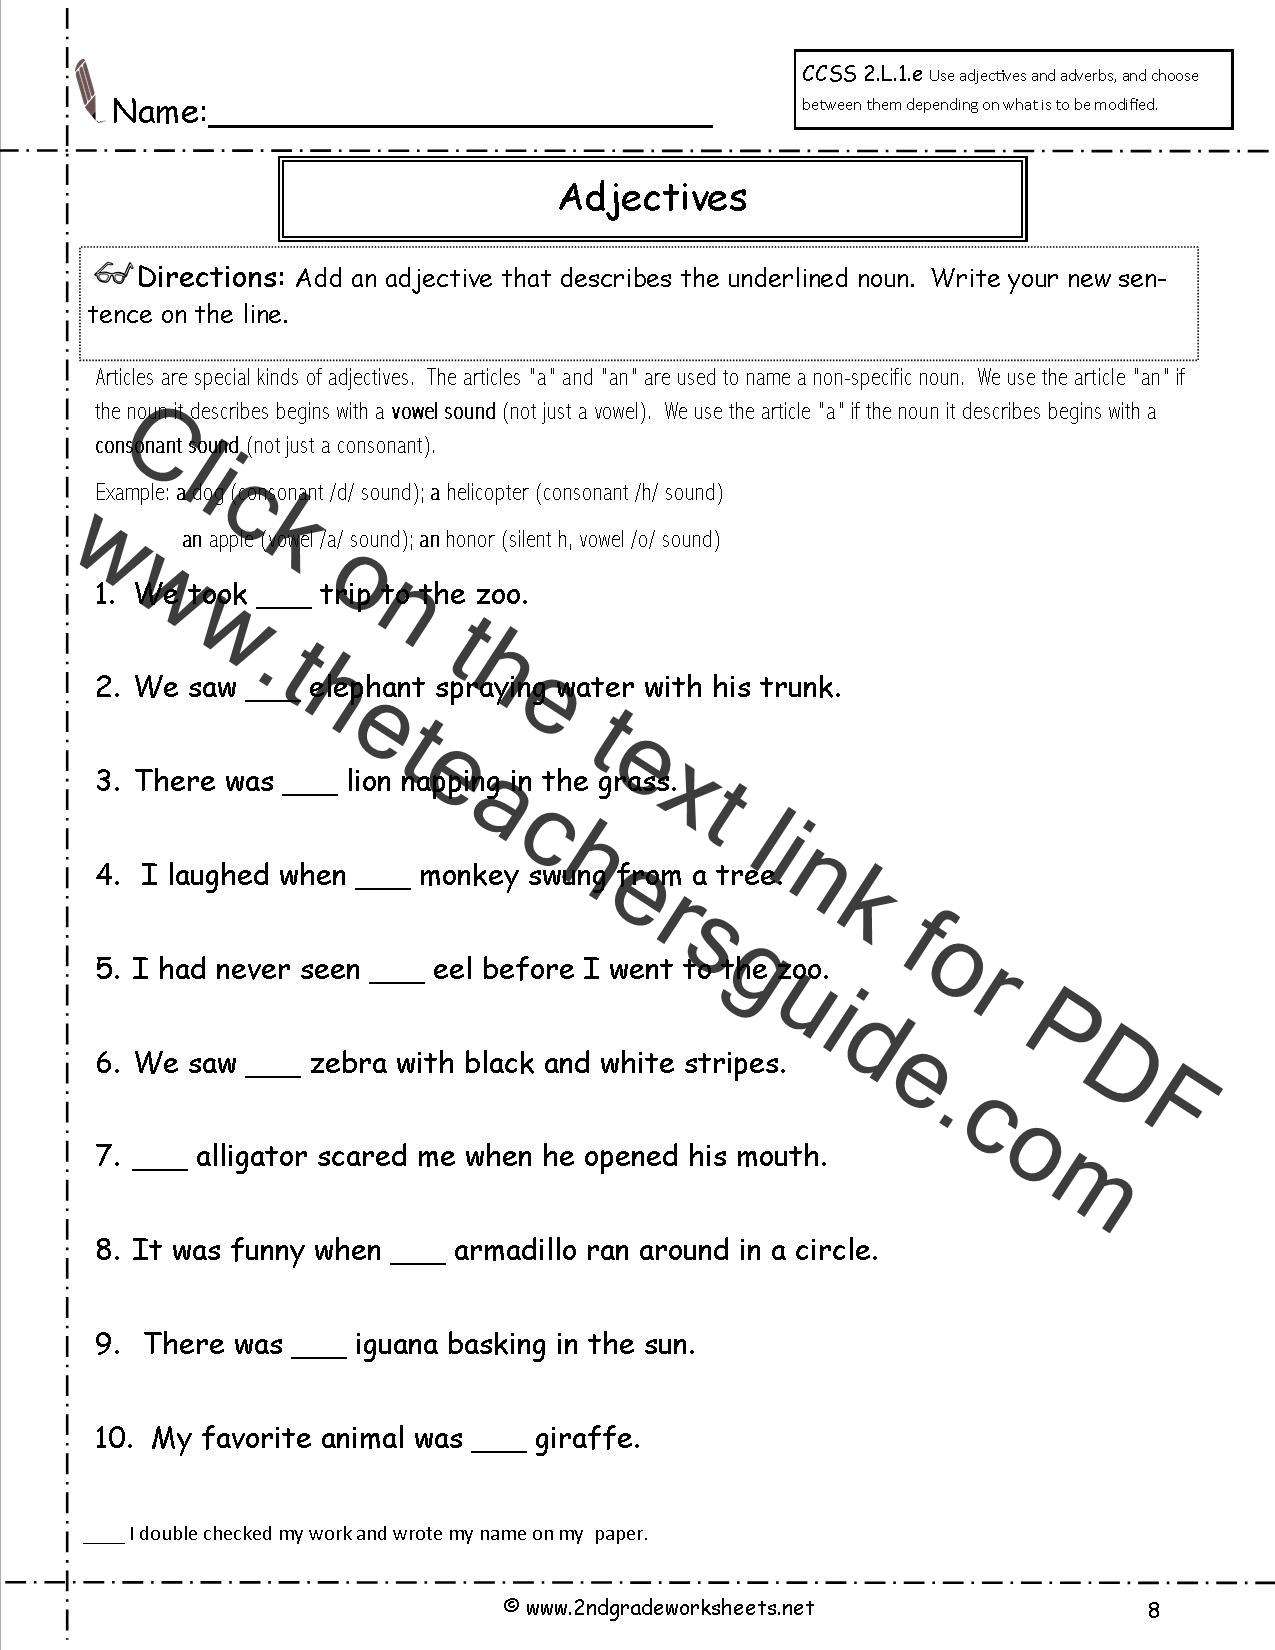 Printables Printable Grammar Worksheets free languagegrammar worksheets and printouts adjectives worksheets